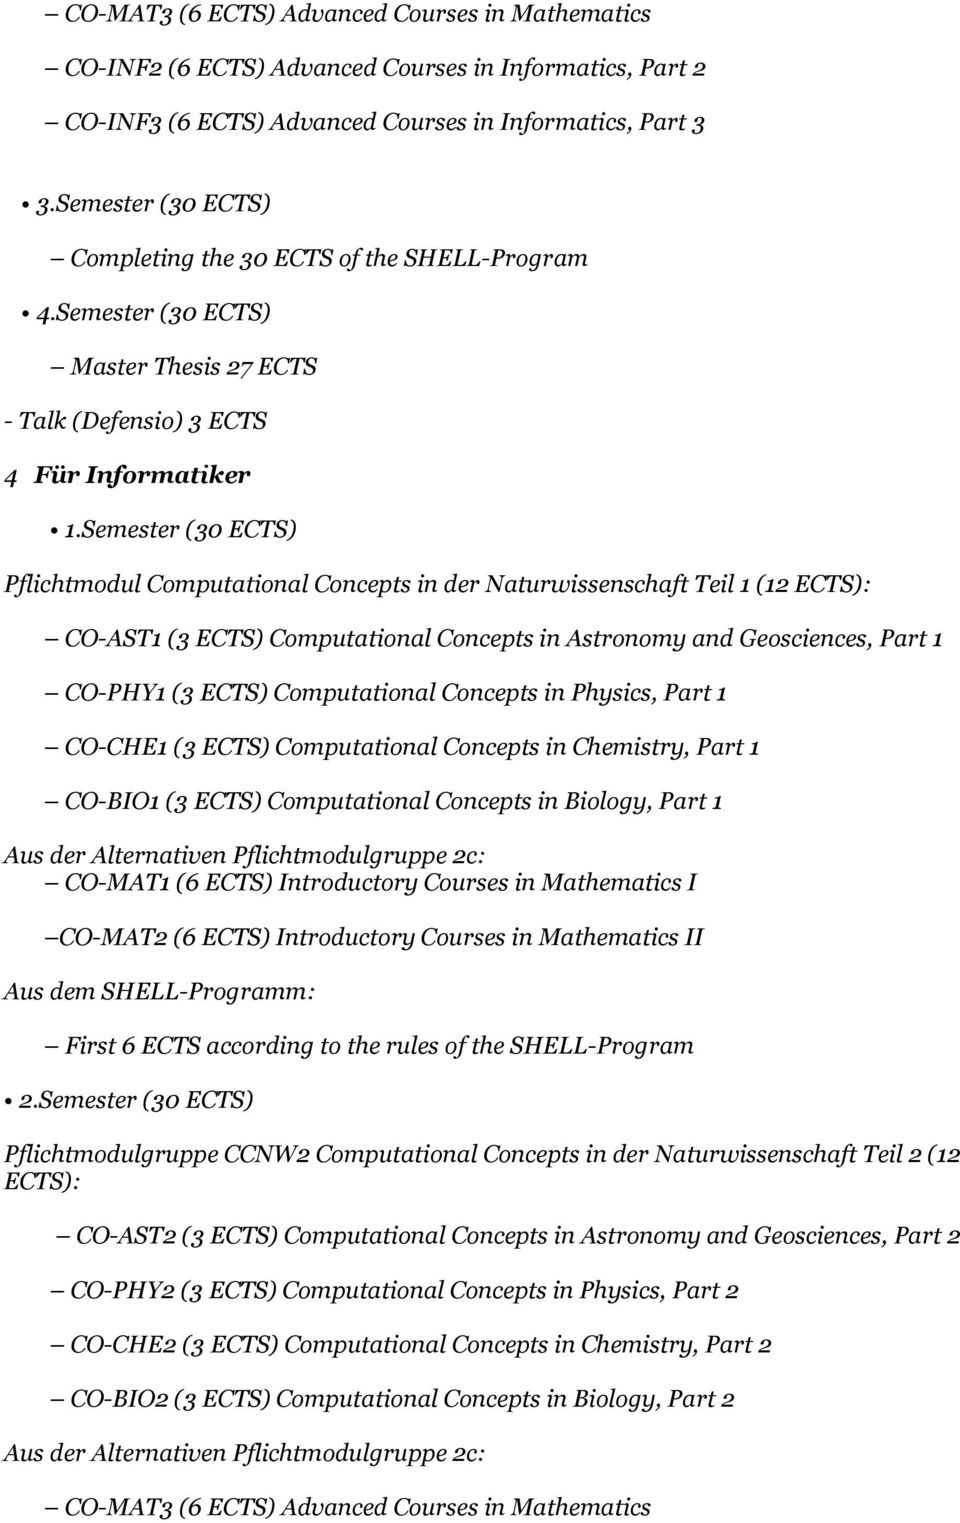 Semester (30 ECTS) Pflichtmodul Computational Concepts in der Naturwissenschaft Teil 1 (12 ECTS): CO-AST1 (3 ECTS) Computational Concepts in Astronomy and Geosciences, Part 1 CO-PHY1 (3 ECTS)